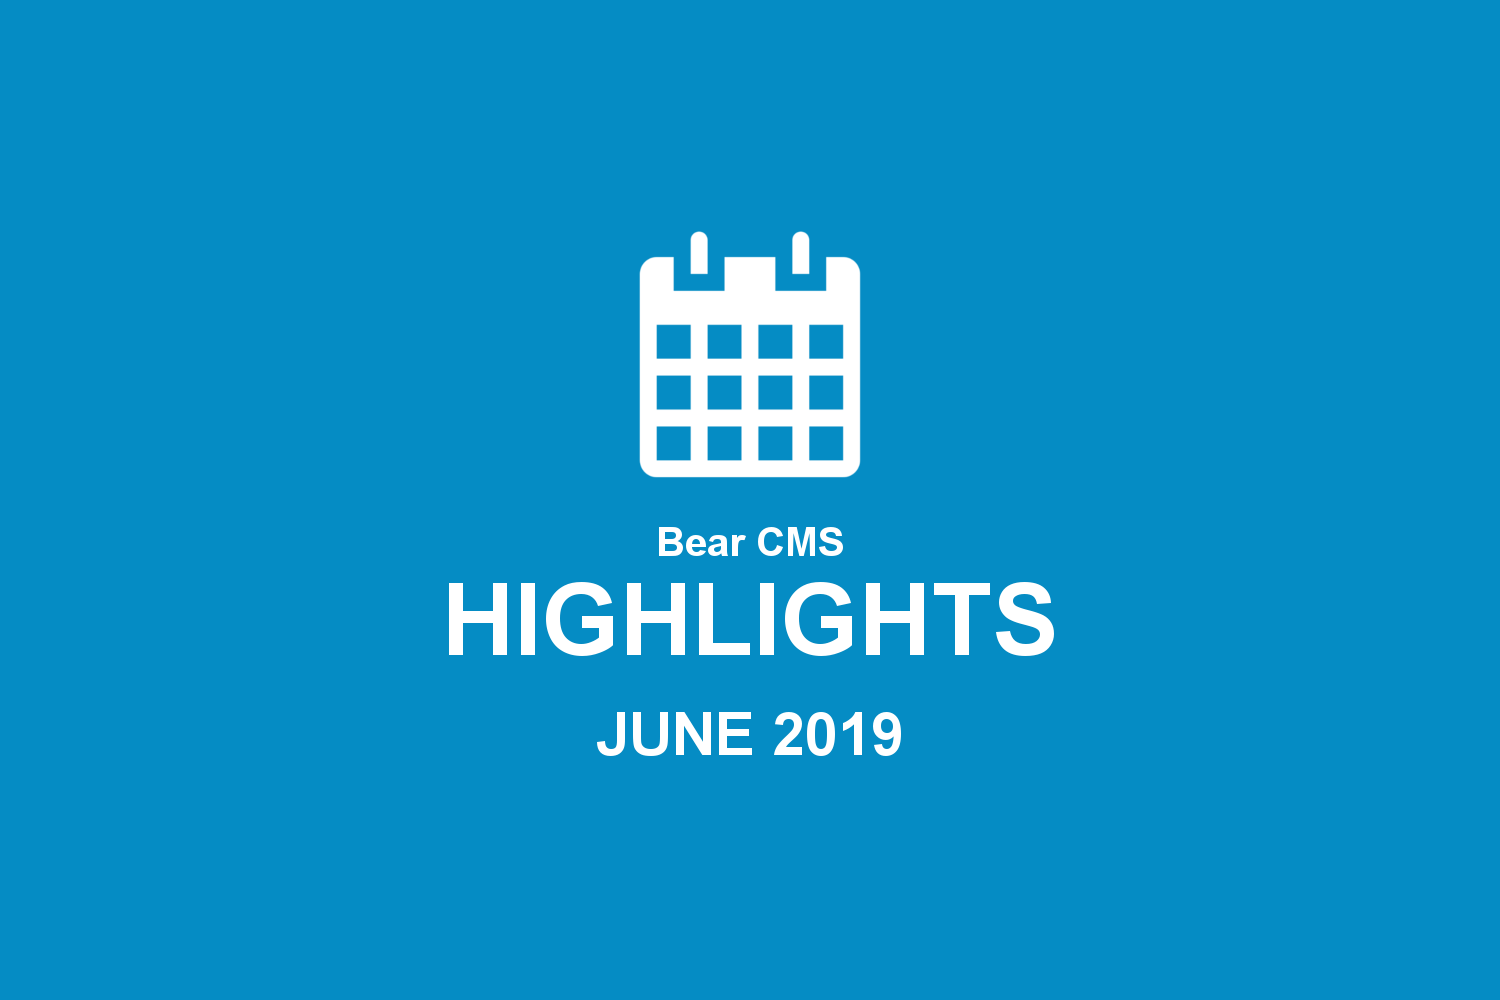 Bear CMS highlights (June 2019)